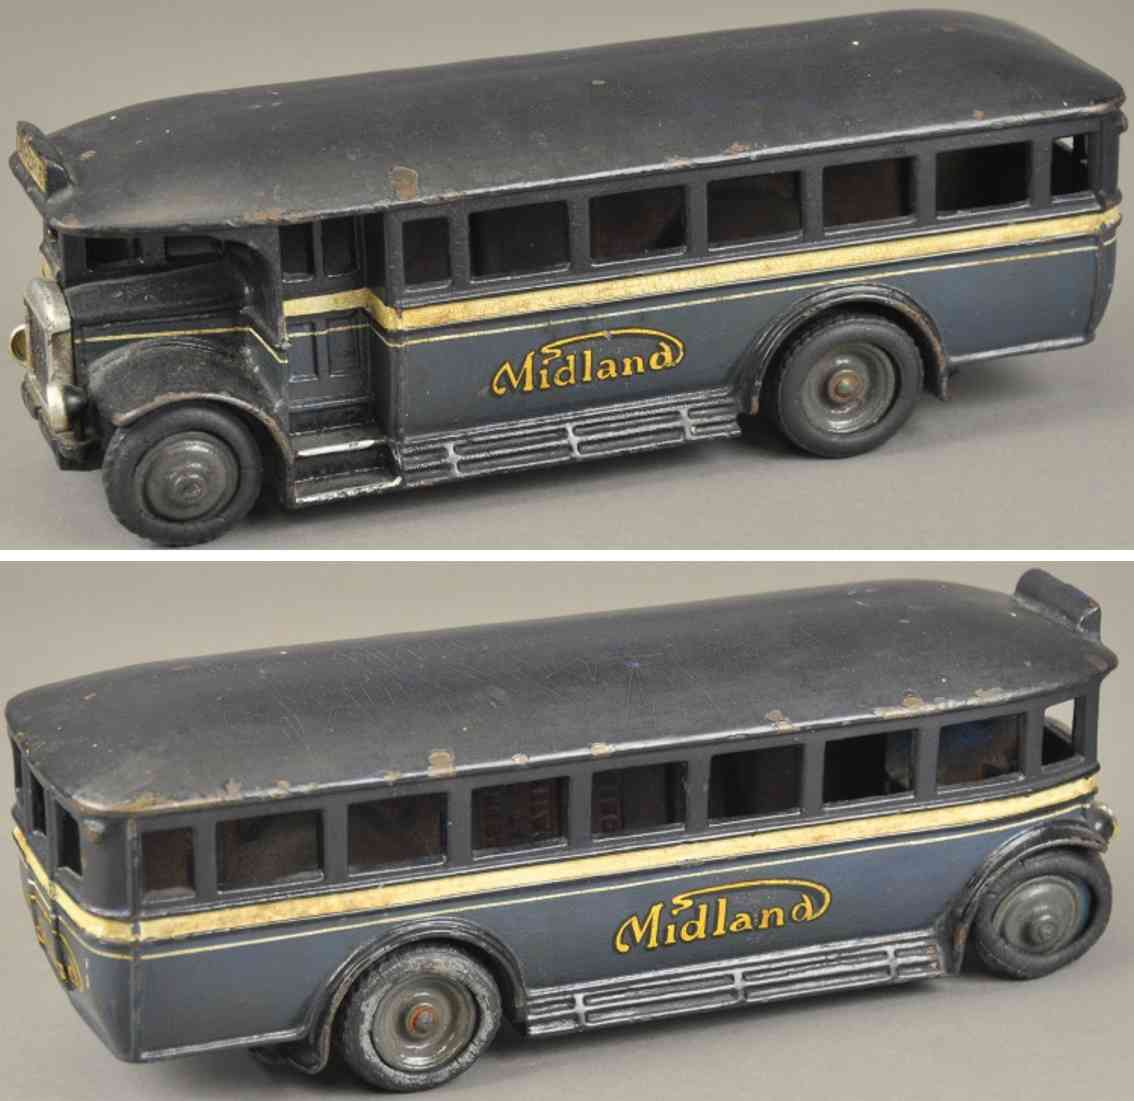 wallwork henry and co spielzeug gusseisen midland bus blau